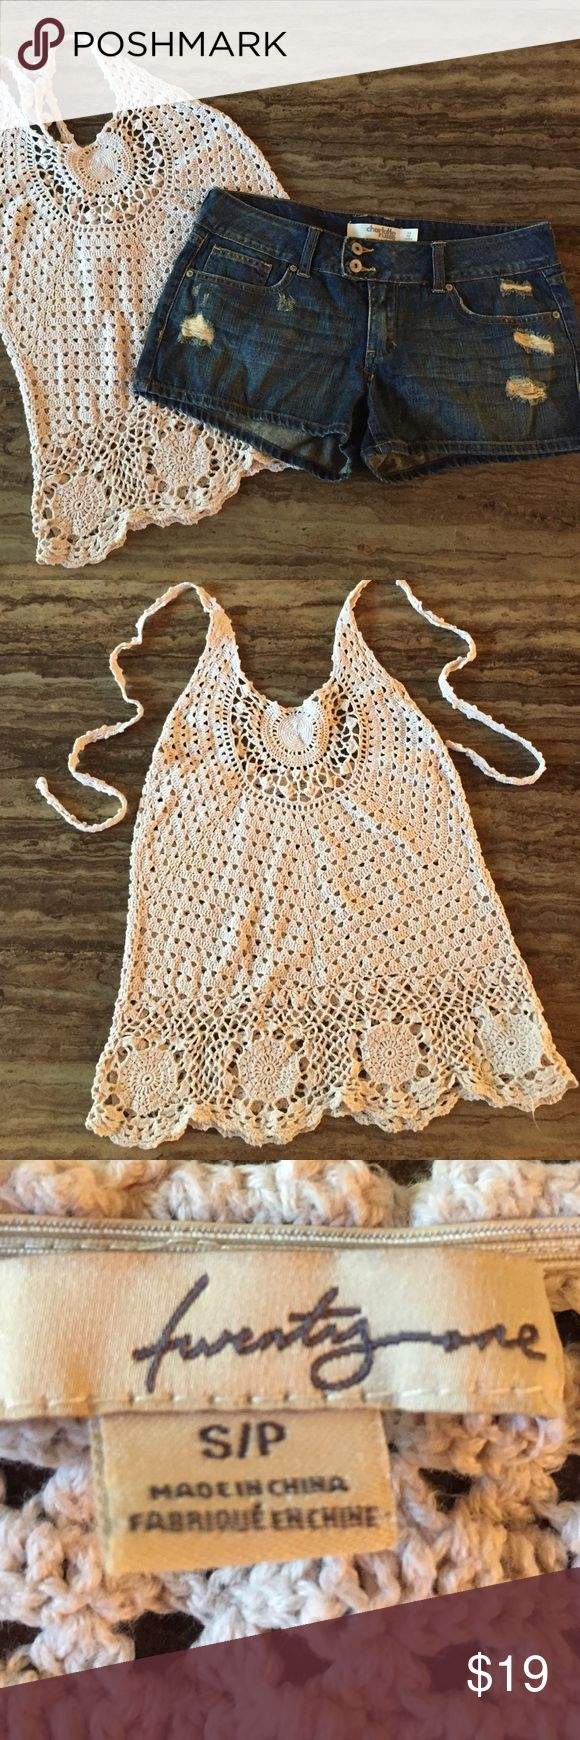 """CROCHET LACE HALTER TOP BY TWENTY ONE SIZE S/P This is a very cute crochet beige lace halter top.  It ties around the neck.  The flat chest measurement is 14 1/2 but has about 2 inch stretch. The length from about TOP of shoulder to bottom opening is 23-24"""".  100 % cotton hand wash cold.  Super cute preowned too.  See photos for more condition details.  TOP sold only in this listing.  Shorts sold in separate listing.  Thanks for looking.  Any questions please ask. twenty one Tops"""